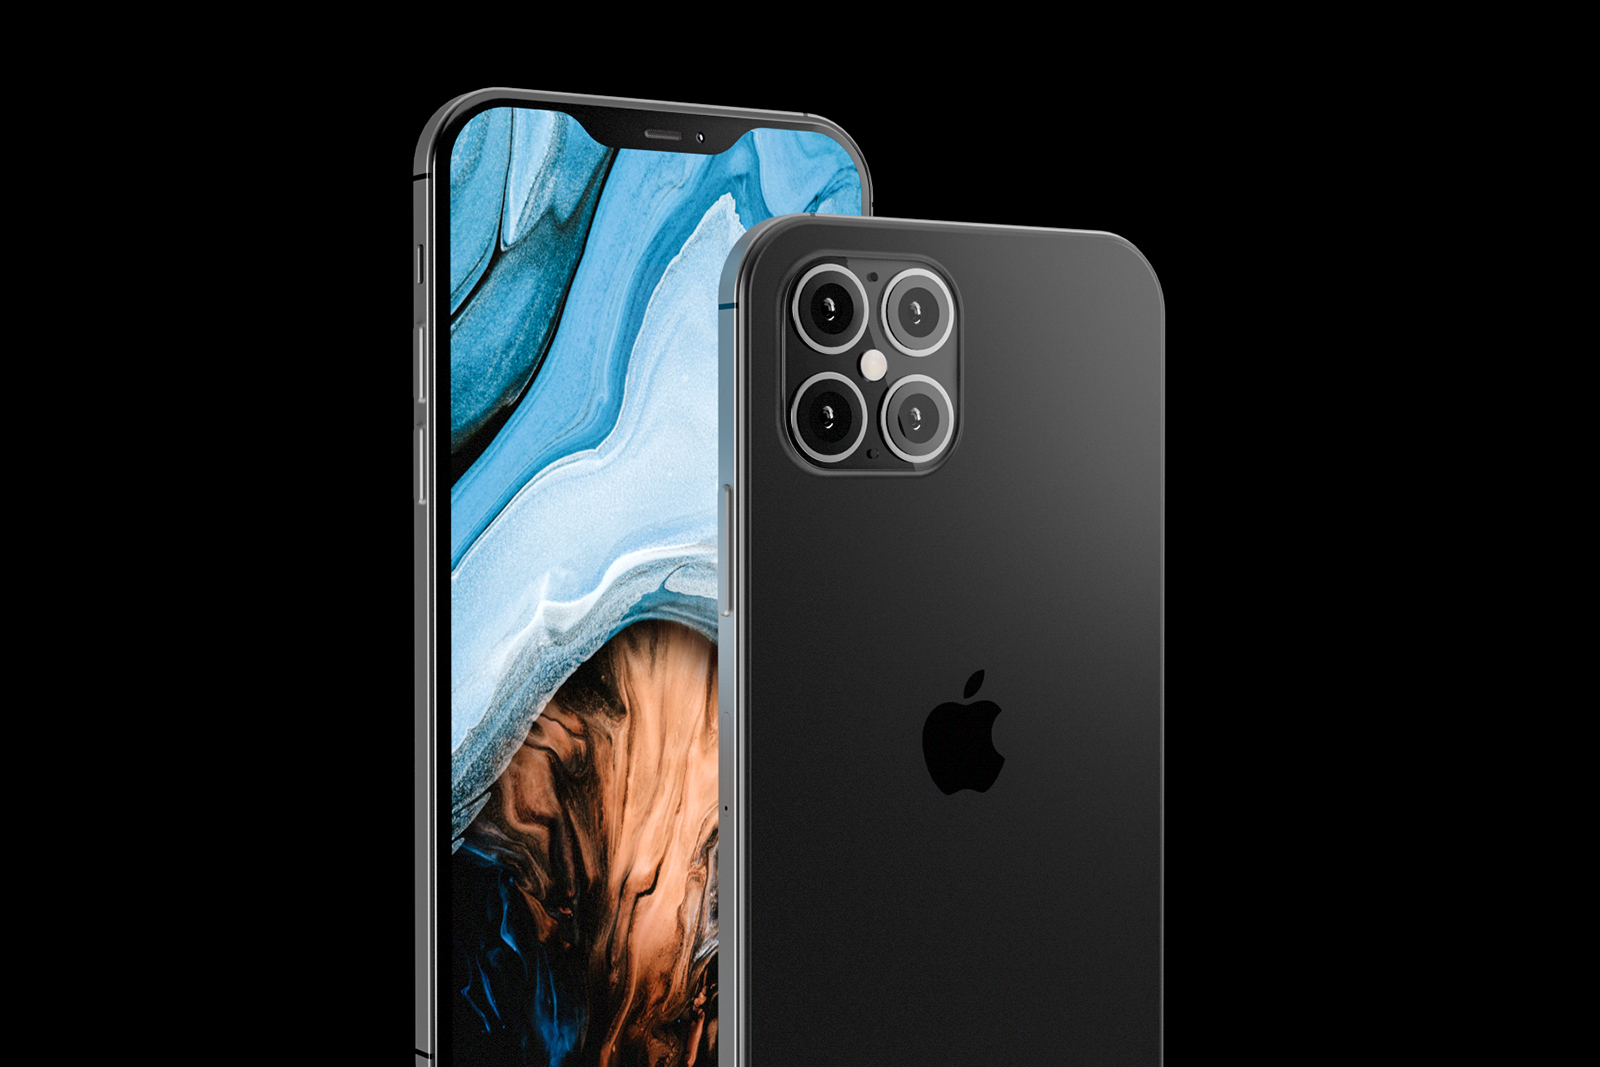 آیفون 12 اپل / Apple iPhone 12 / آیفون 2020 / iPhone 2020